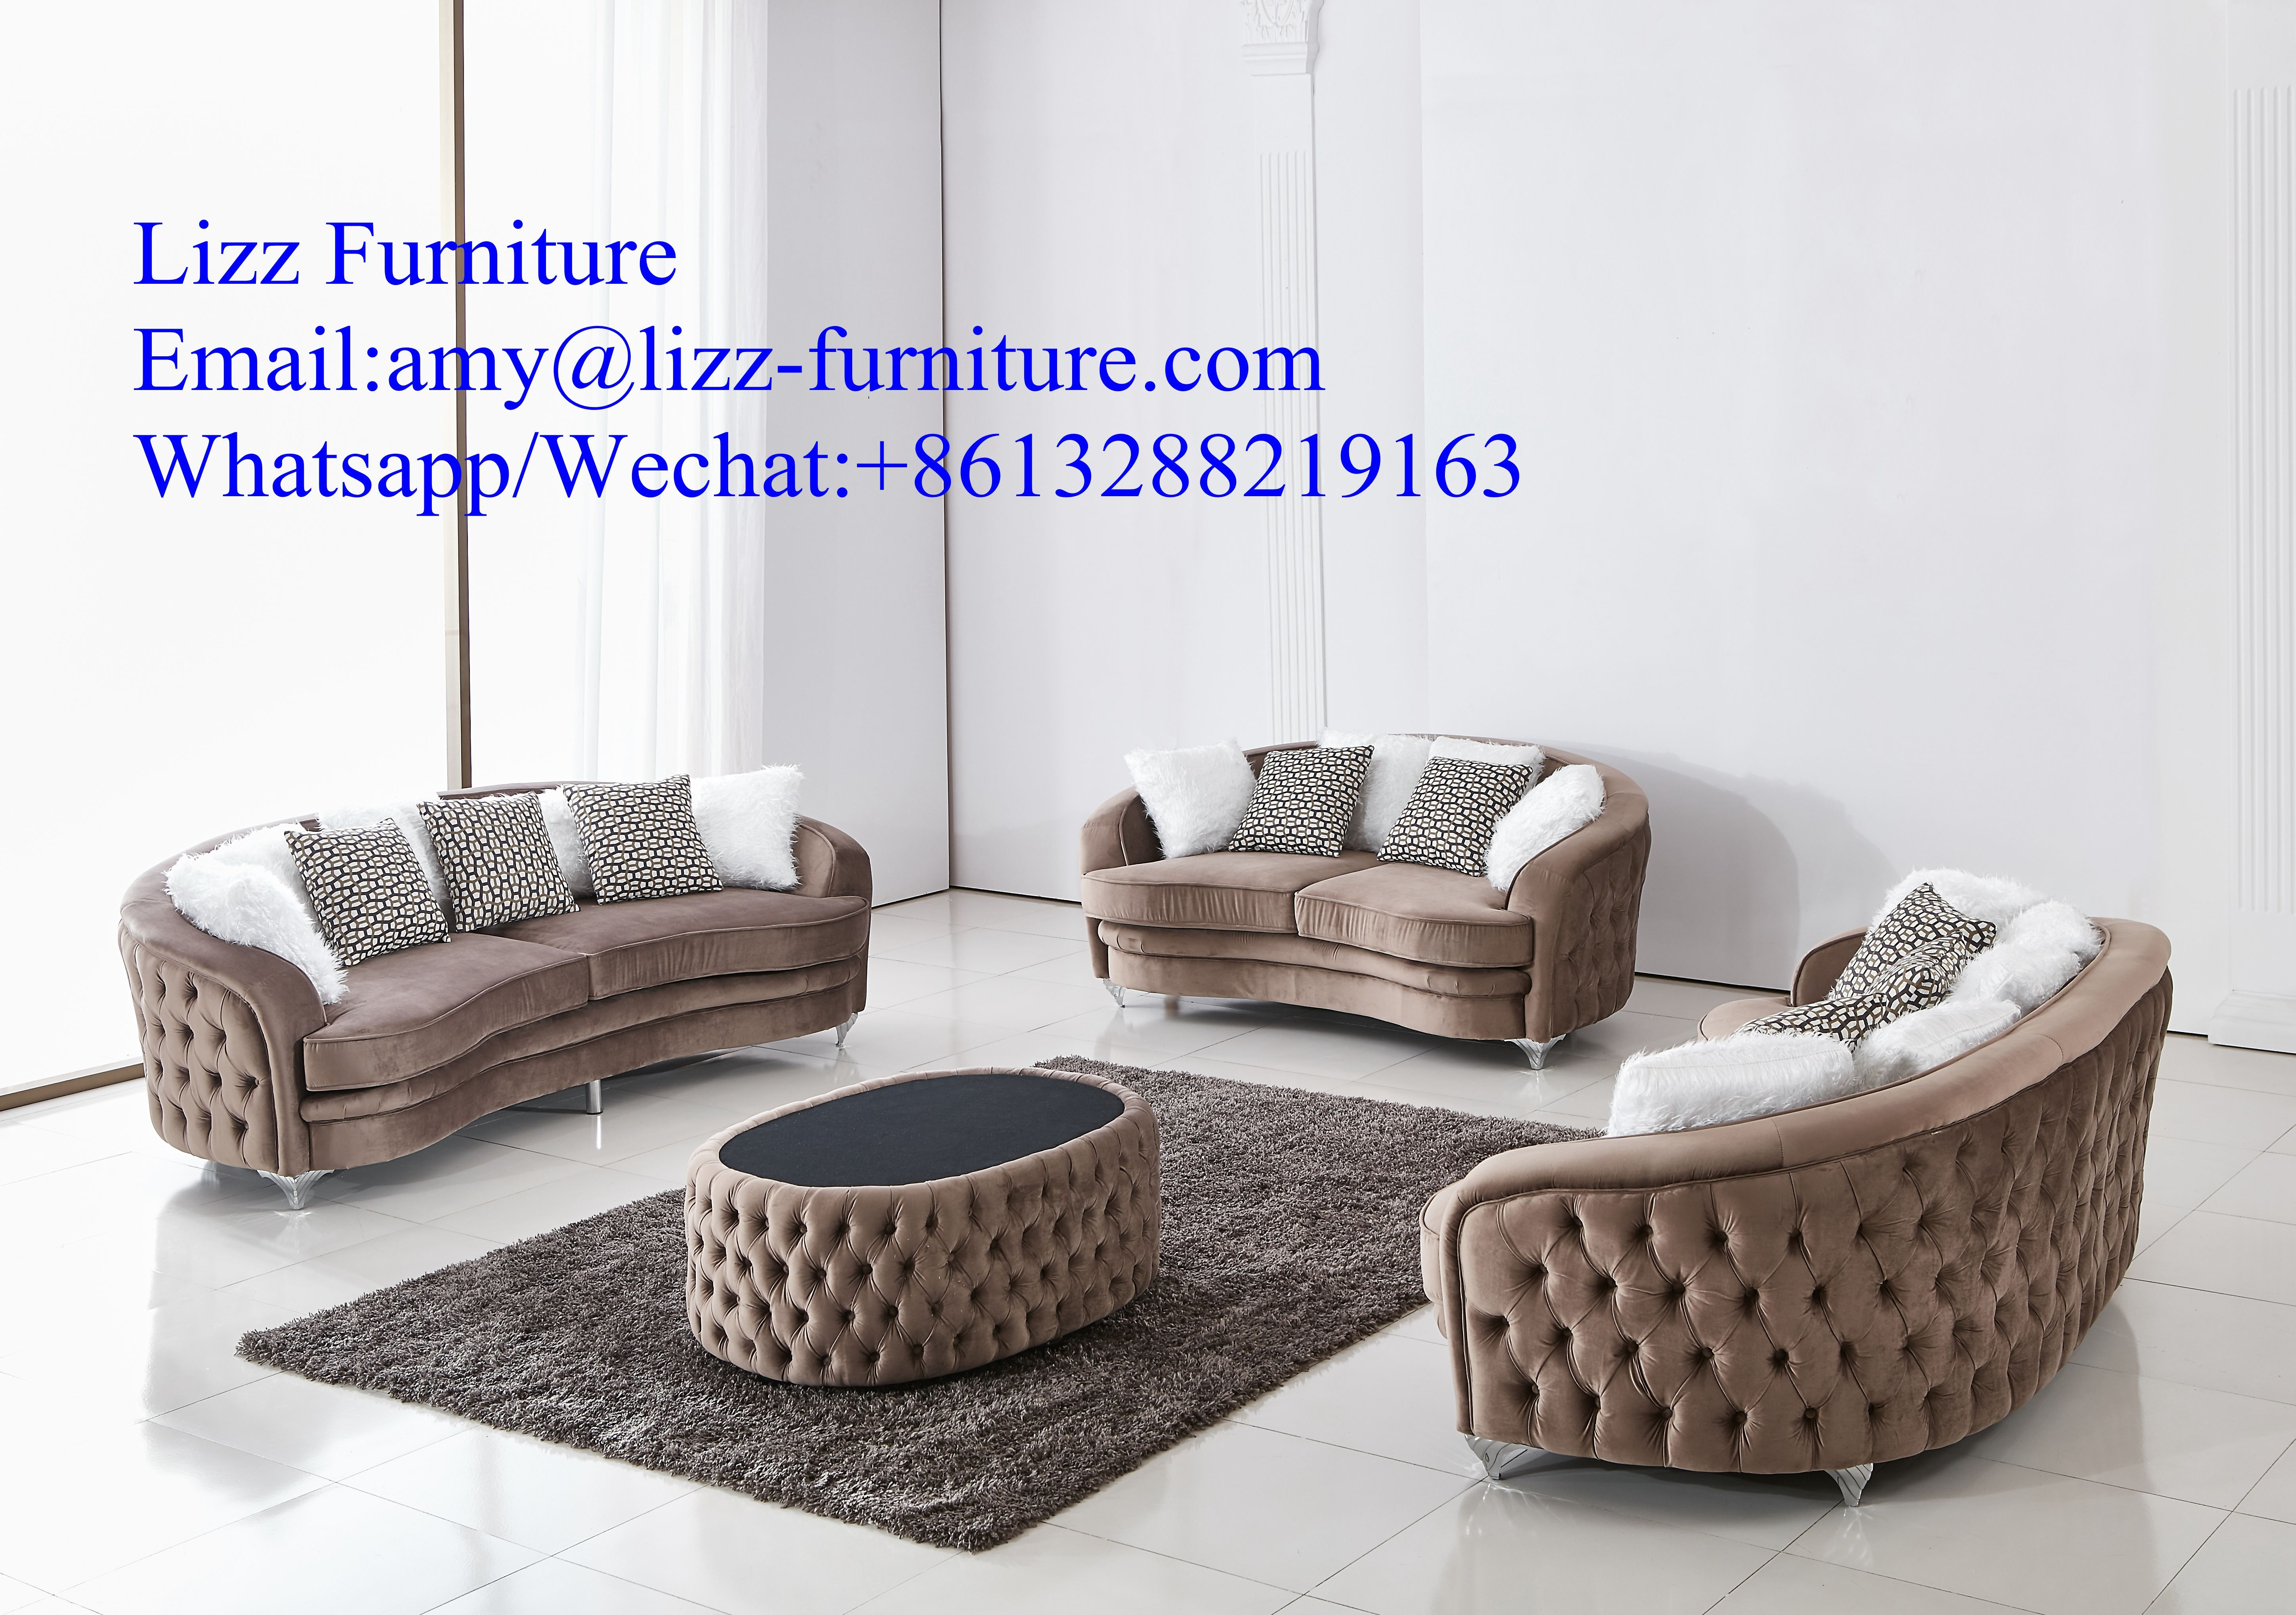 Lizz Sofa Model Lf 808 Take A Break From The Busy Life Enjoy And